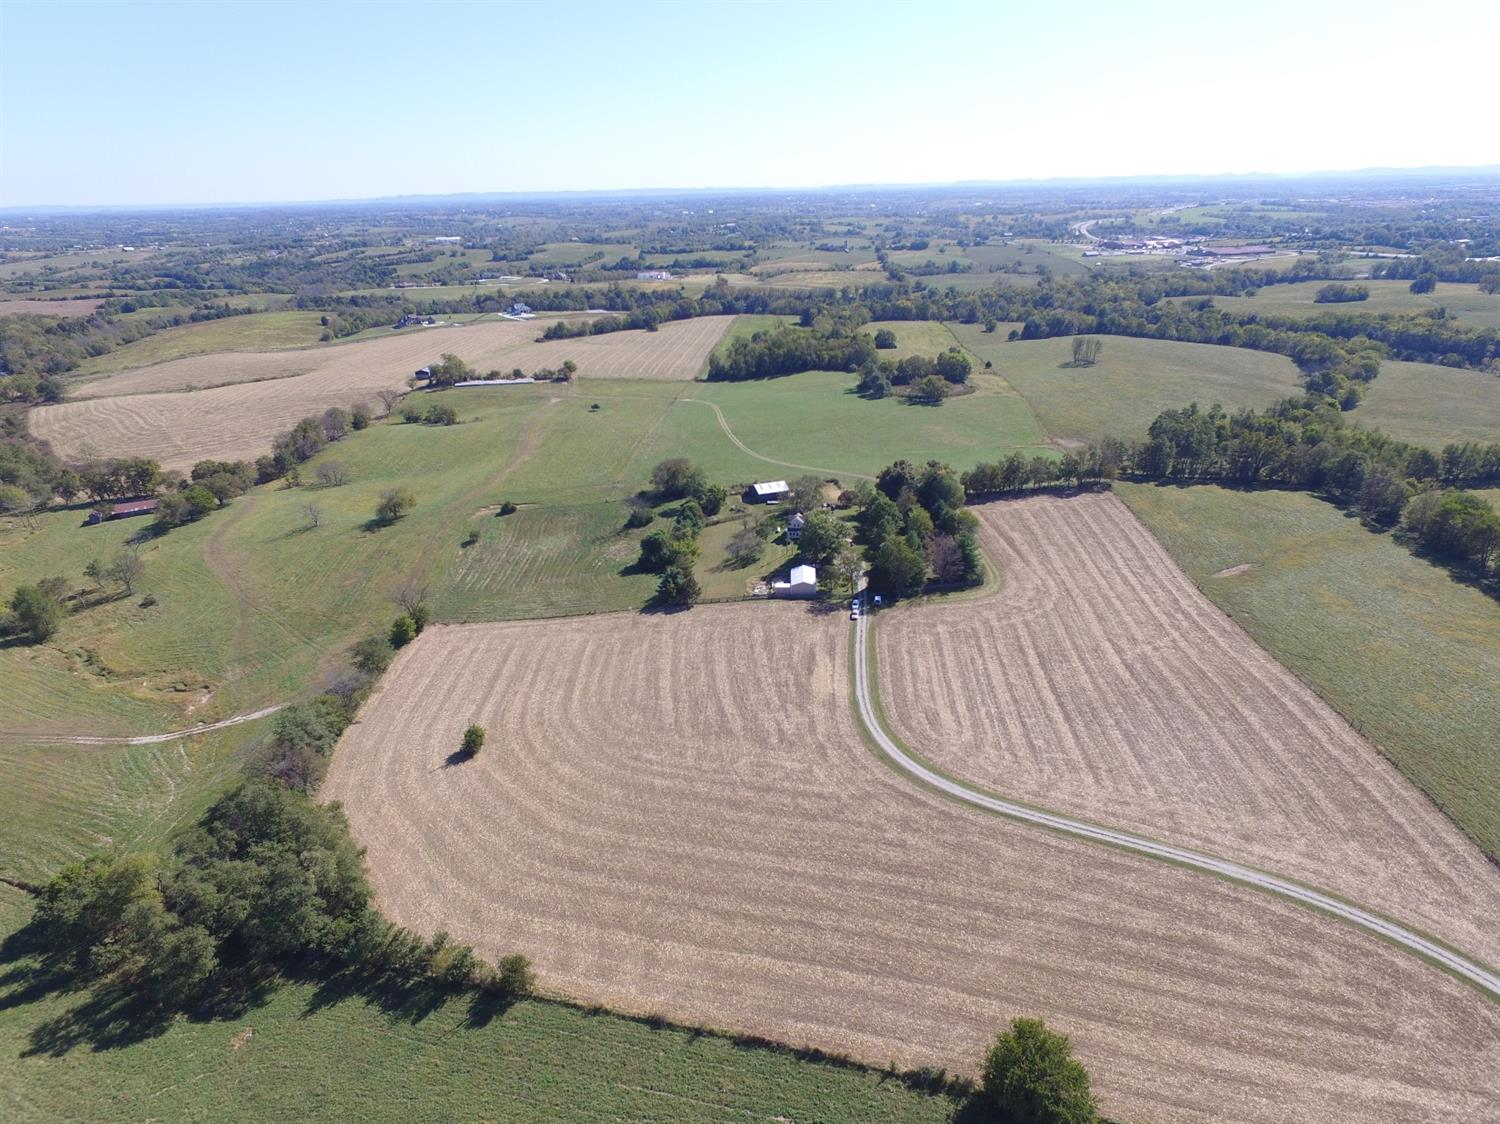 Remarkably%20rare%2015%20acre%20farm%20(part%20of%20McCord%20Farm)%20which%20has%20never%20been%20for%20sale%20before.%20Nestled%20in%20the%20trees%20surrounded%20by%20four%20board%20fencing%20with%20beautiful%20fields%20of%20corn,%20cattle,%20and%20beautiful%20green%20pastures%20is%20an%20enchanting%202%20story%20home%20with%20large%20front%20porch%20with%20columns%20that%20dates%20back%20to%201913%20and%20was%20a%20Sears%20&%20Roebuck%20four%20square%20house%20plan.%20An%20addition%20was%20added%20over%20the%20years%20for%20a%20large%20modern%20kitchen%20with%20an%20entire%20wall%20of%20windows%20which%20gave%20room%20above(upstairs)%20for%20a%20large%20master%20bedroom.%20Original%20stunning%20dark%20wide%20wood%20trim%20and%20interior%20solid%20dark%20wood%20doors.%20Home%20has%204%20bedrooms%20&%203%20baths,%207%20fireplaces,%20formal%20living%20and%20dining%20room,%20den%20and%20office.%20Property%20has%20a%20large%20barn,%20large%20metal%20building%20with%20bath%20room,%20fruit%20trees,%20partially%20fenced,%20and%20mature%20trees.%20An%20additional%2035%20acres%20can%20be%20bought%20for%20$250,000.